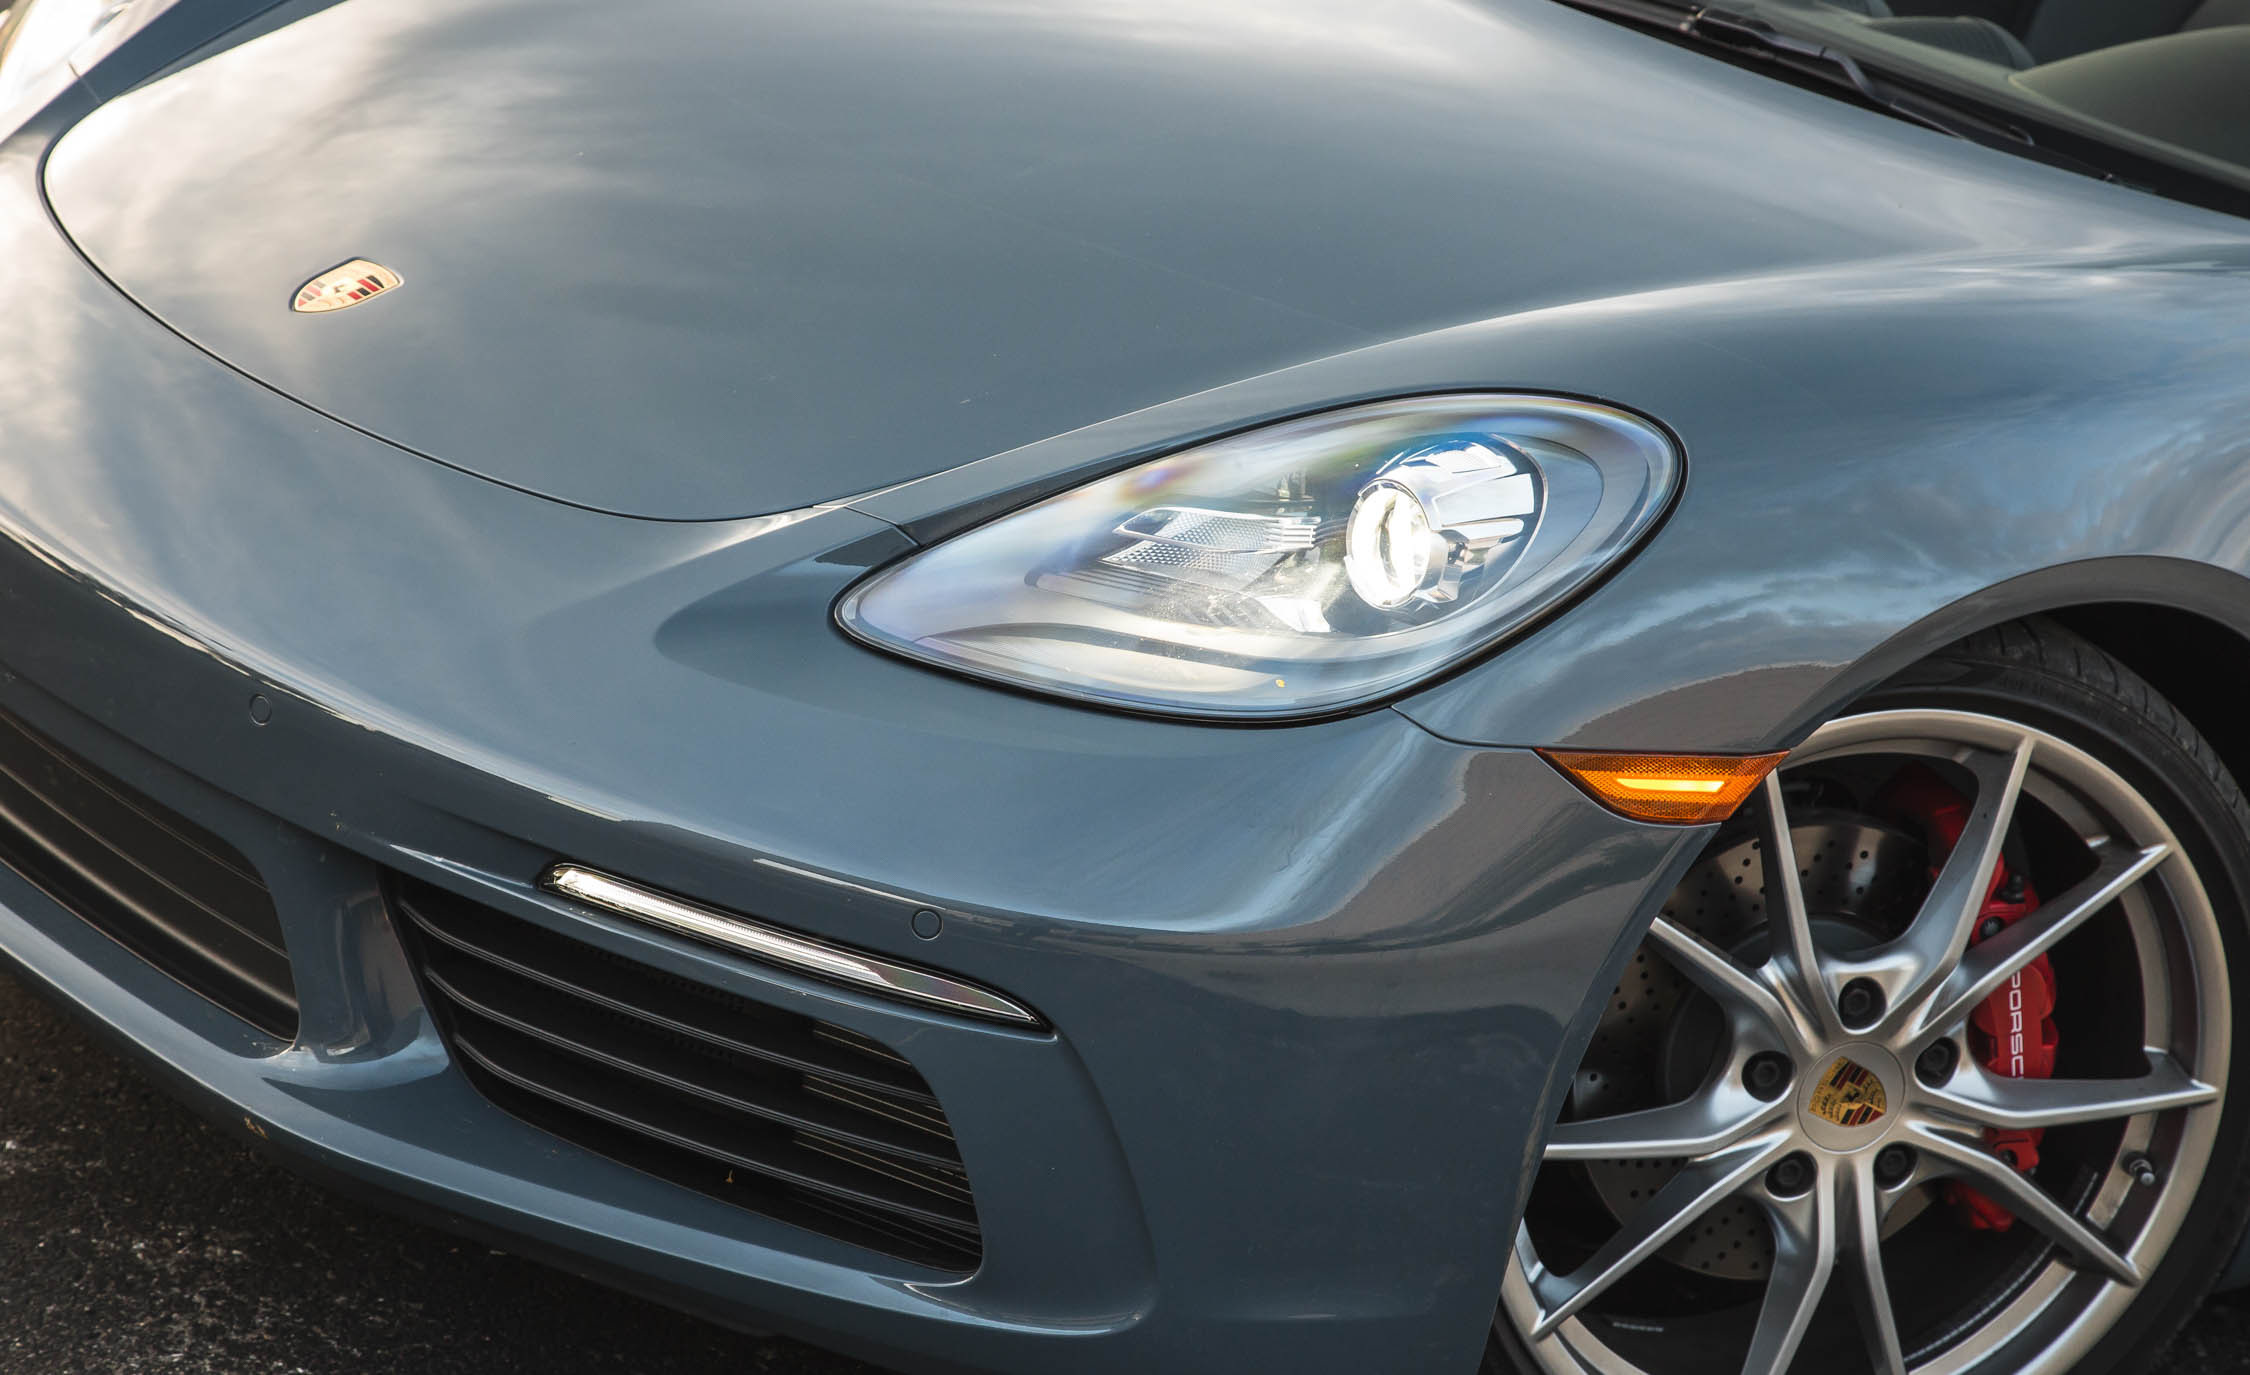 2017 Porsche 718 Boxster S Exterior View Headlight And Bumper (View 26 of 71)